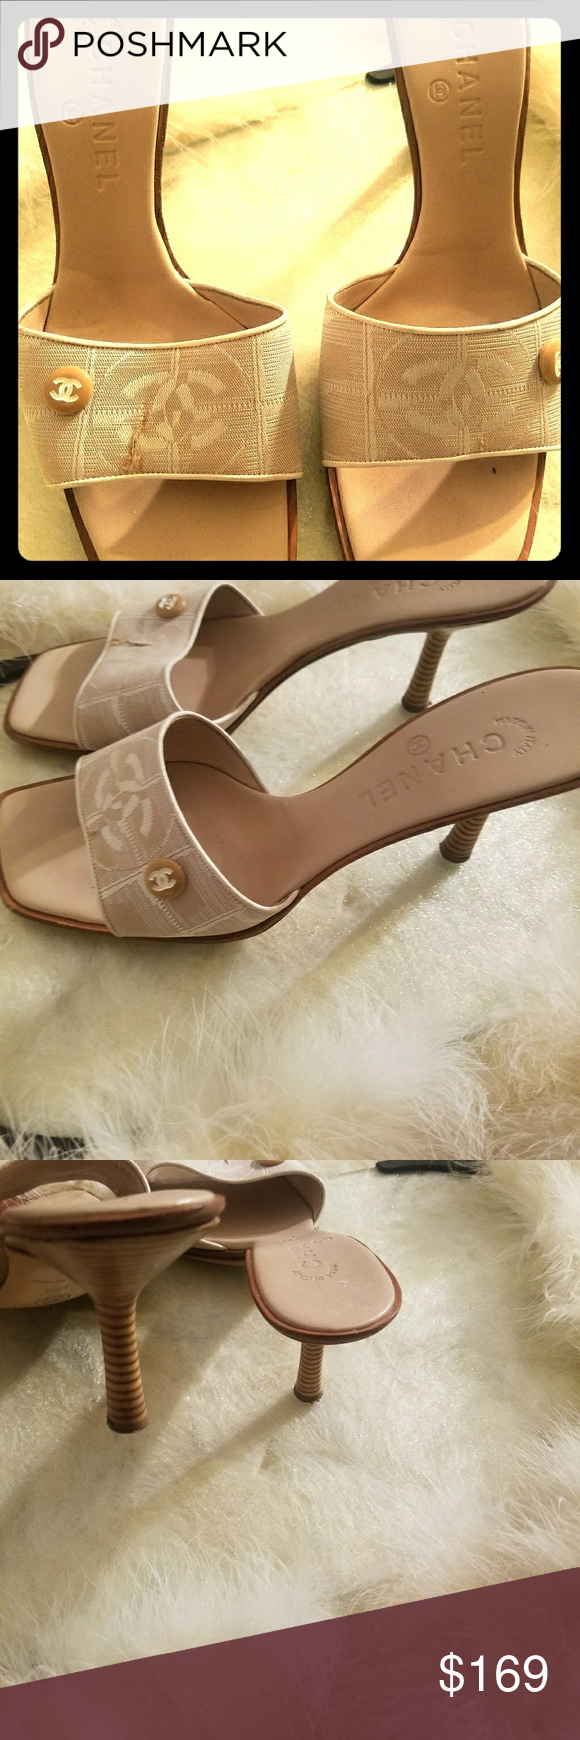 036336aceac34 Used chanel slippers